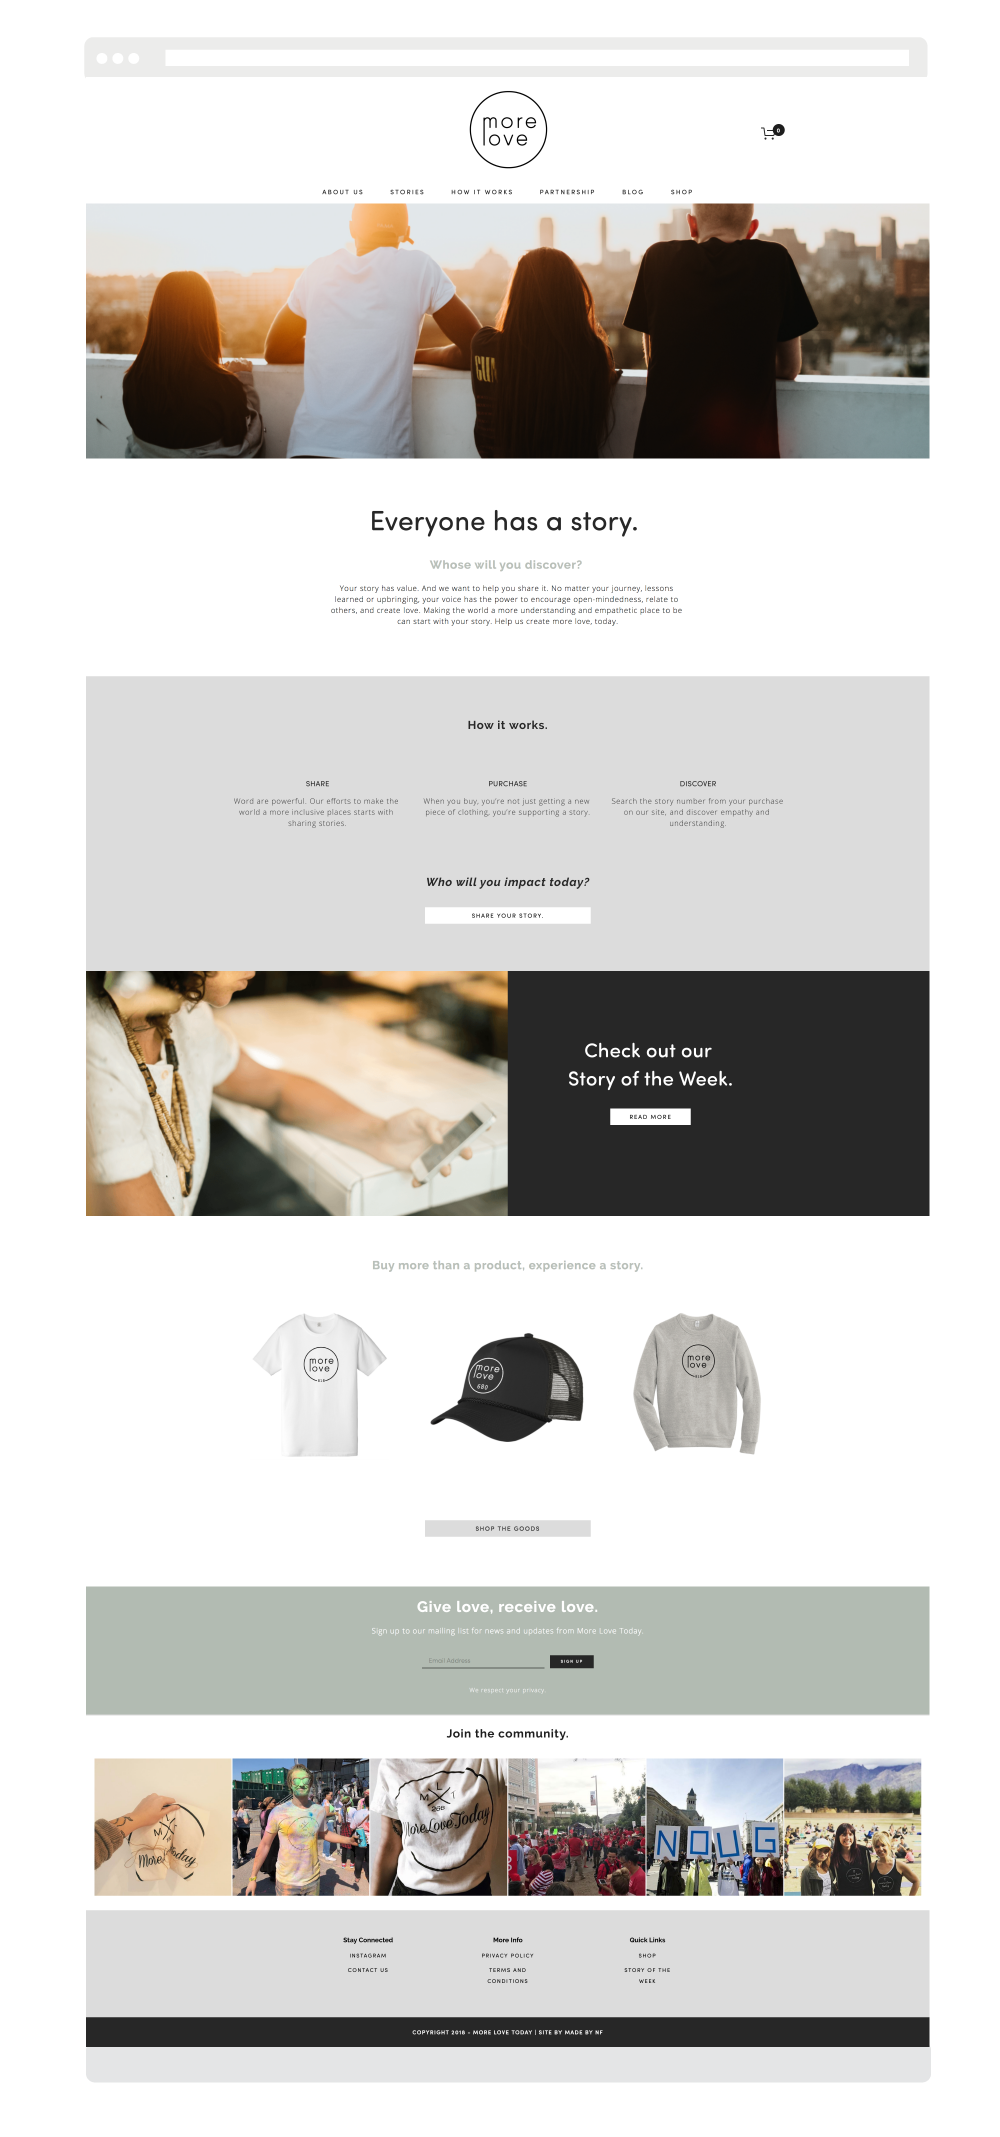 Squarespace website design modern and clean - apaprel squarespace website design.png